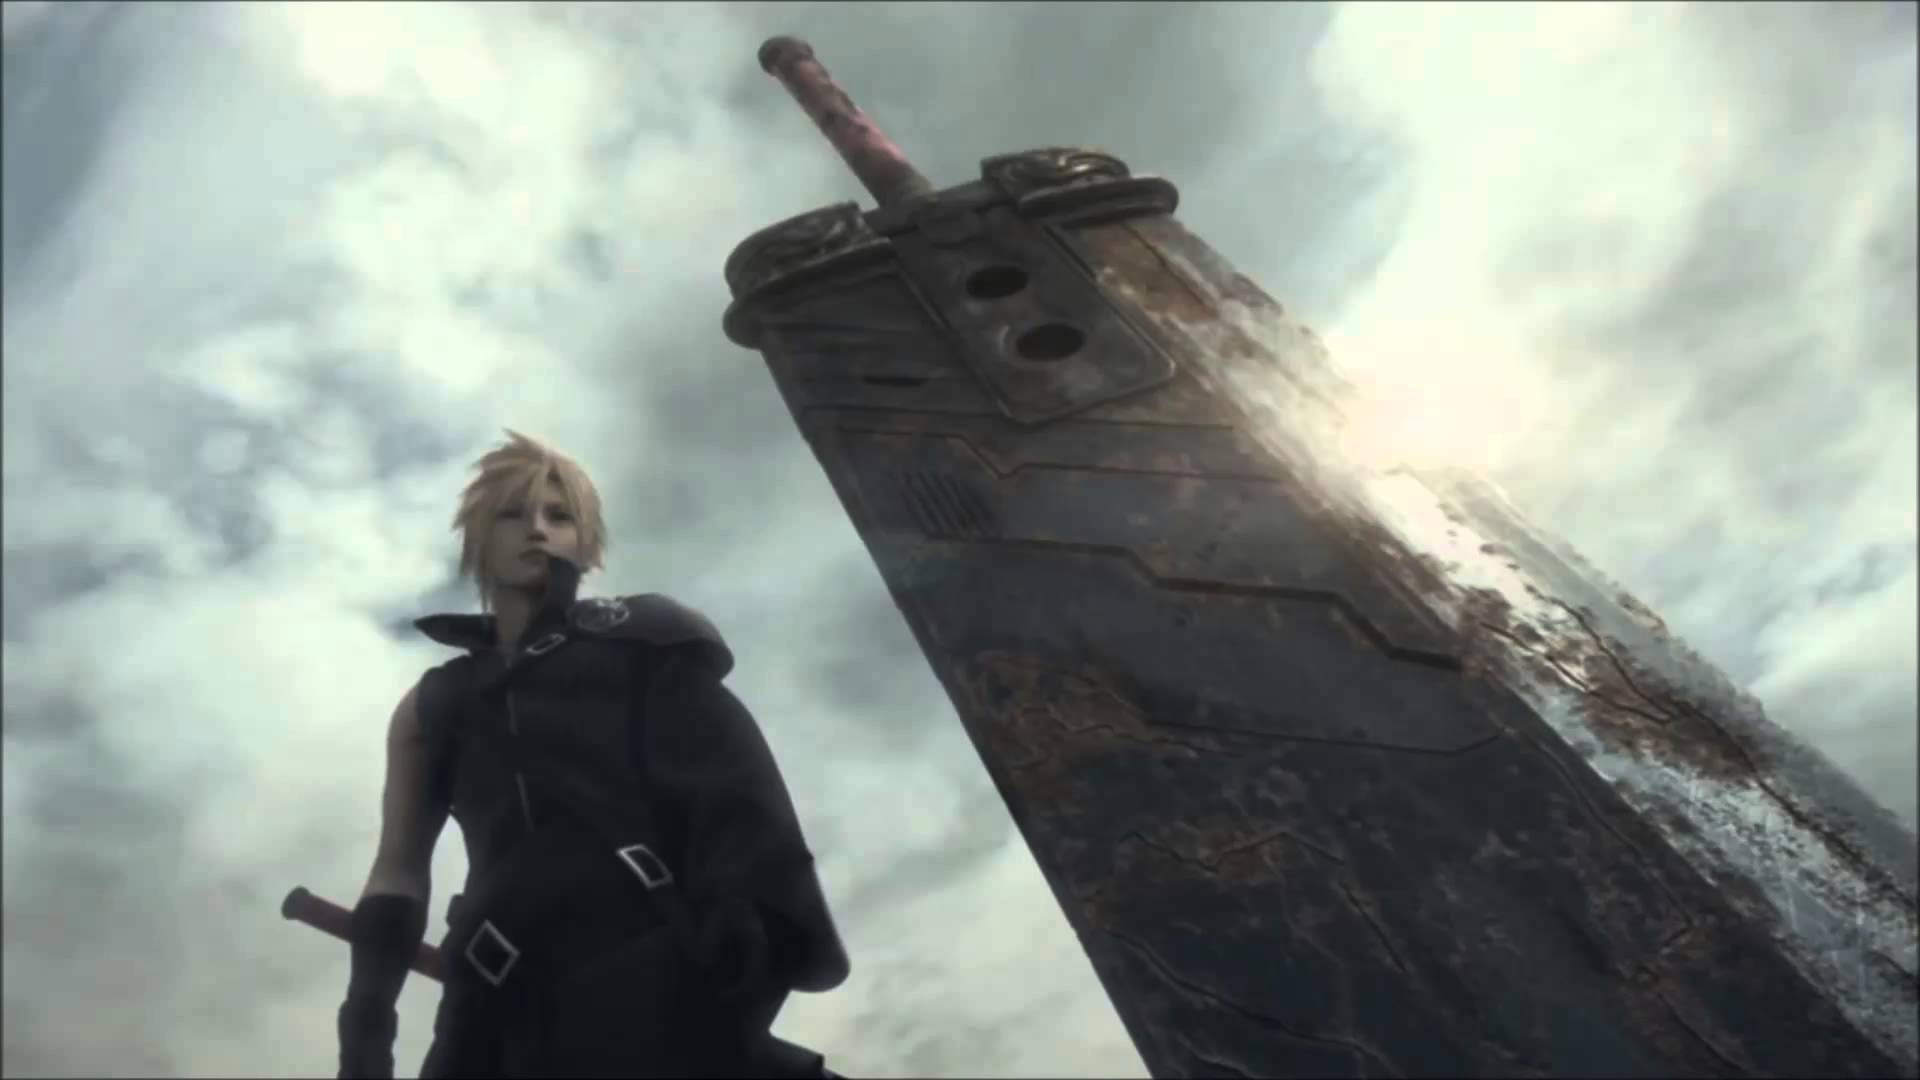 Final Fantasy VII Remake to be episodic adventure using the Unreal